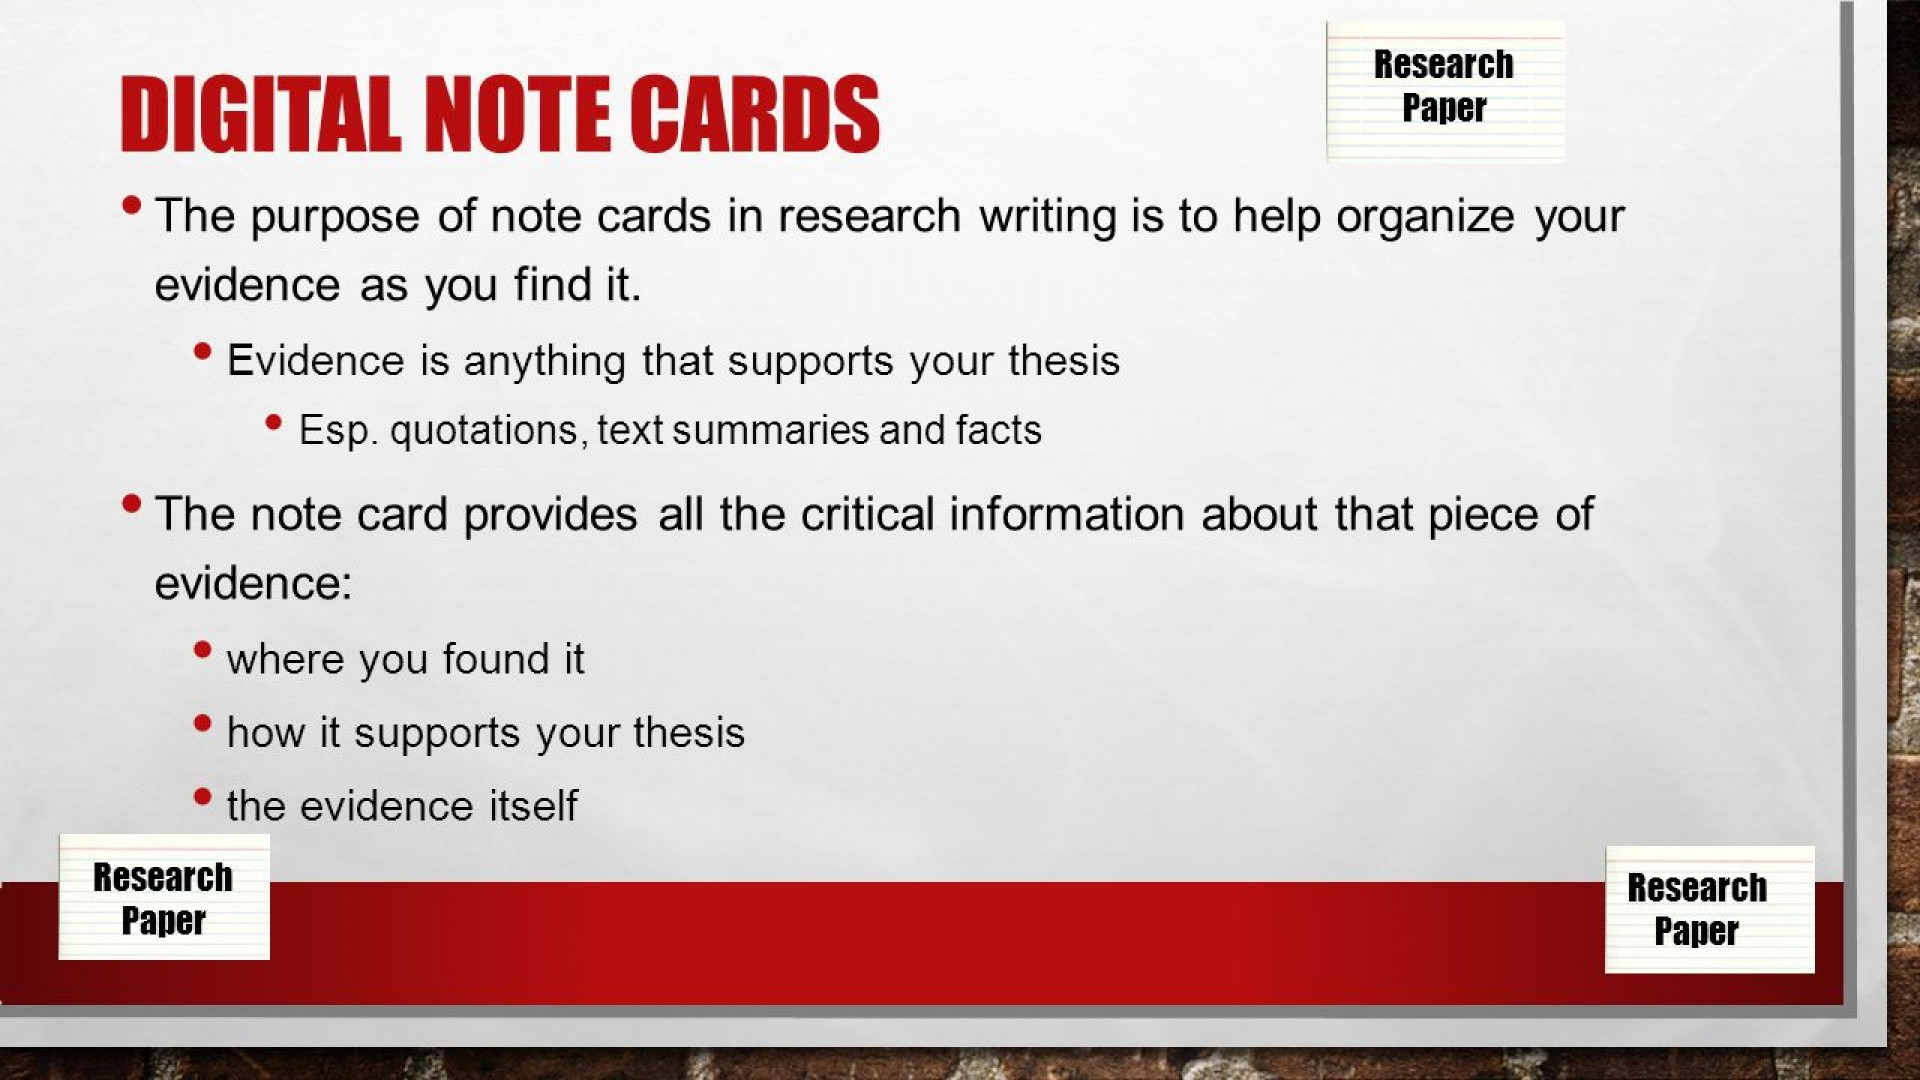 004 Research Paper Note Cards Slide 2 Stupendous Mla Format Examples 1920